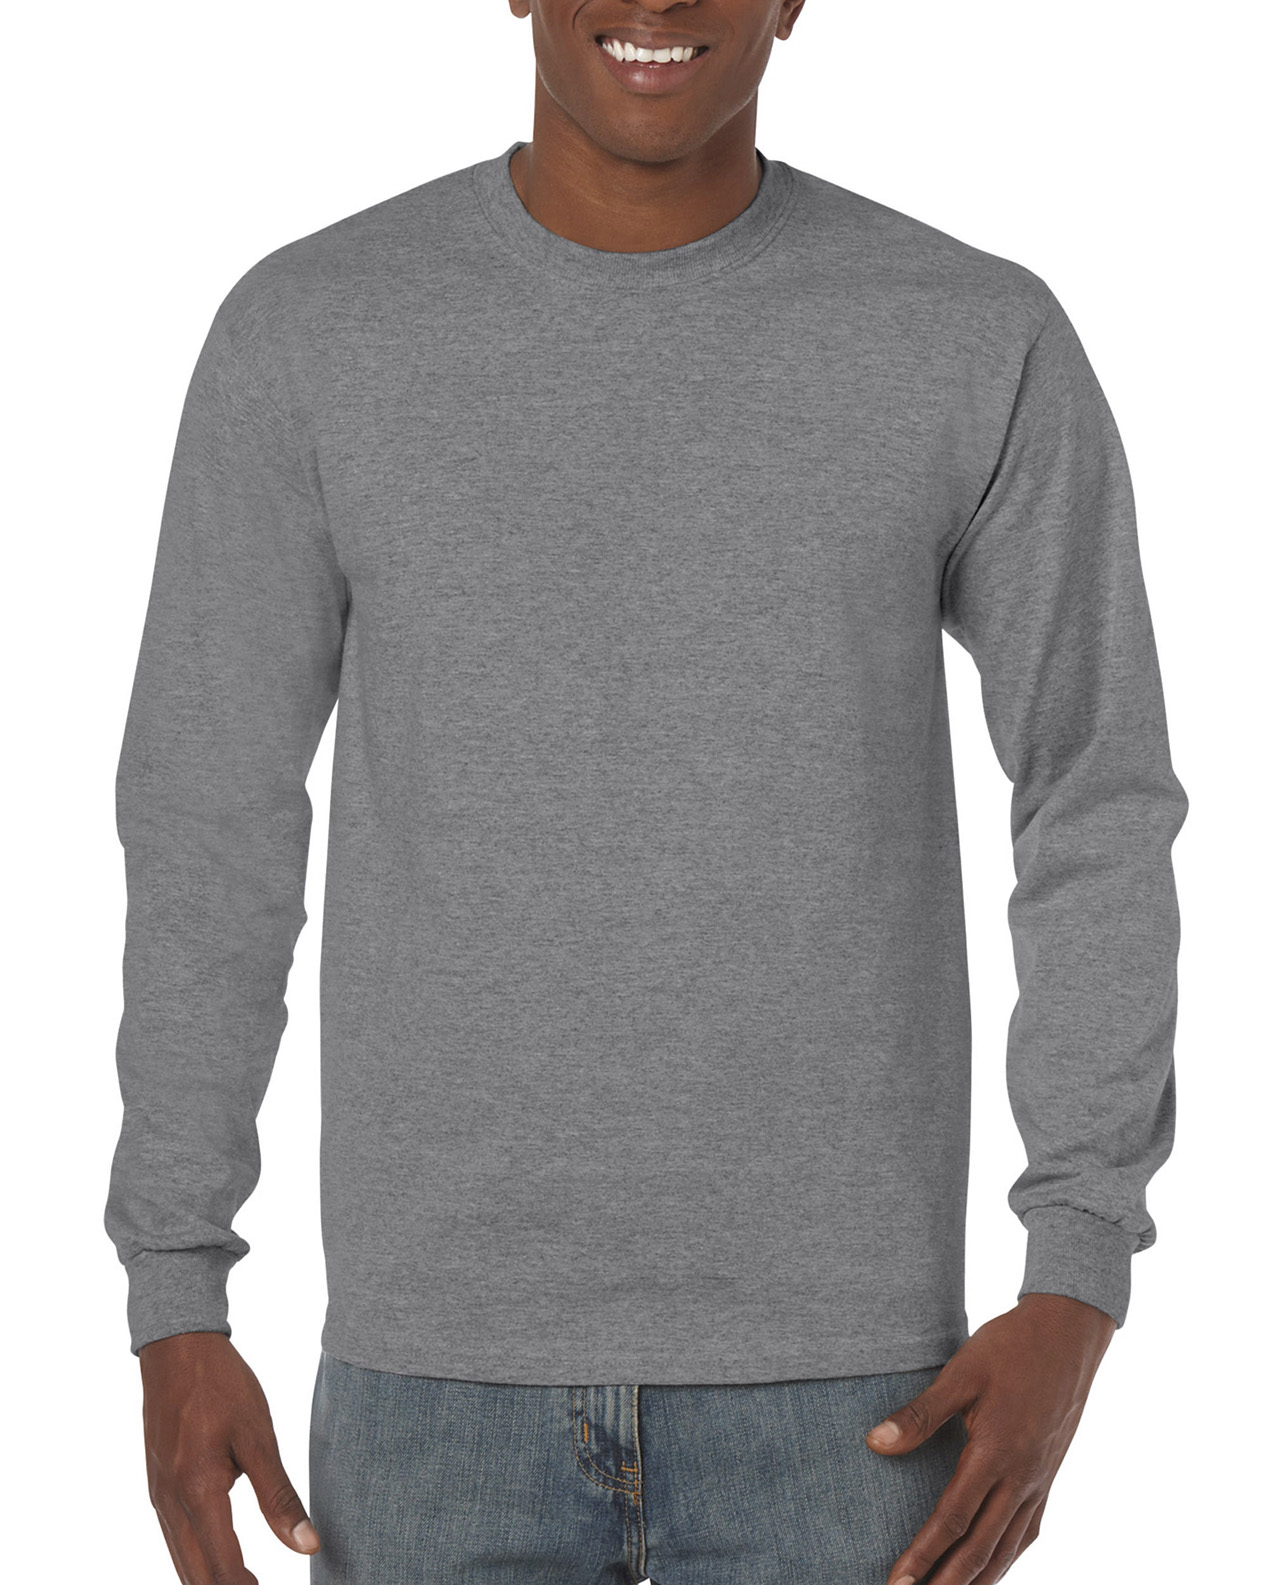 6419cb6772f5 5400 | Gildan® Heavy Cotton™ | 5.3 oz/yd² | Adult Long Sleeve T ...